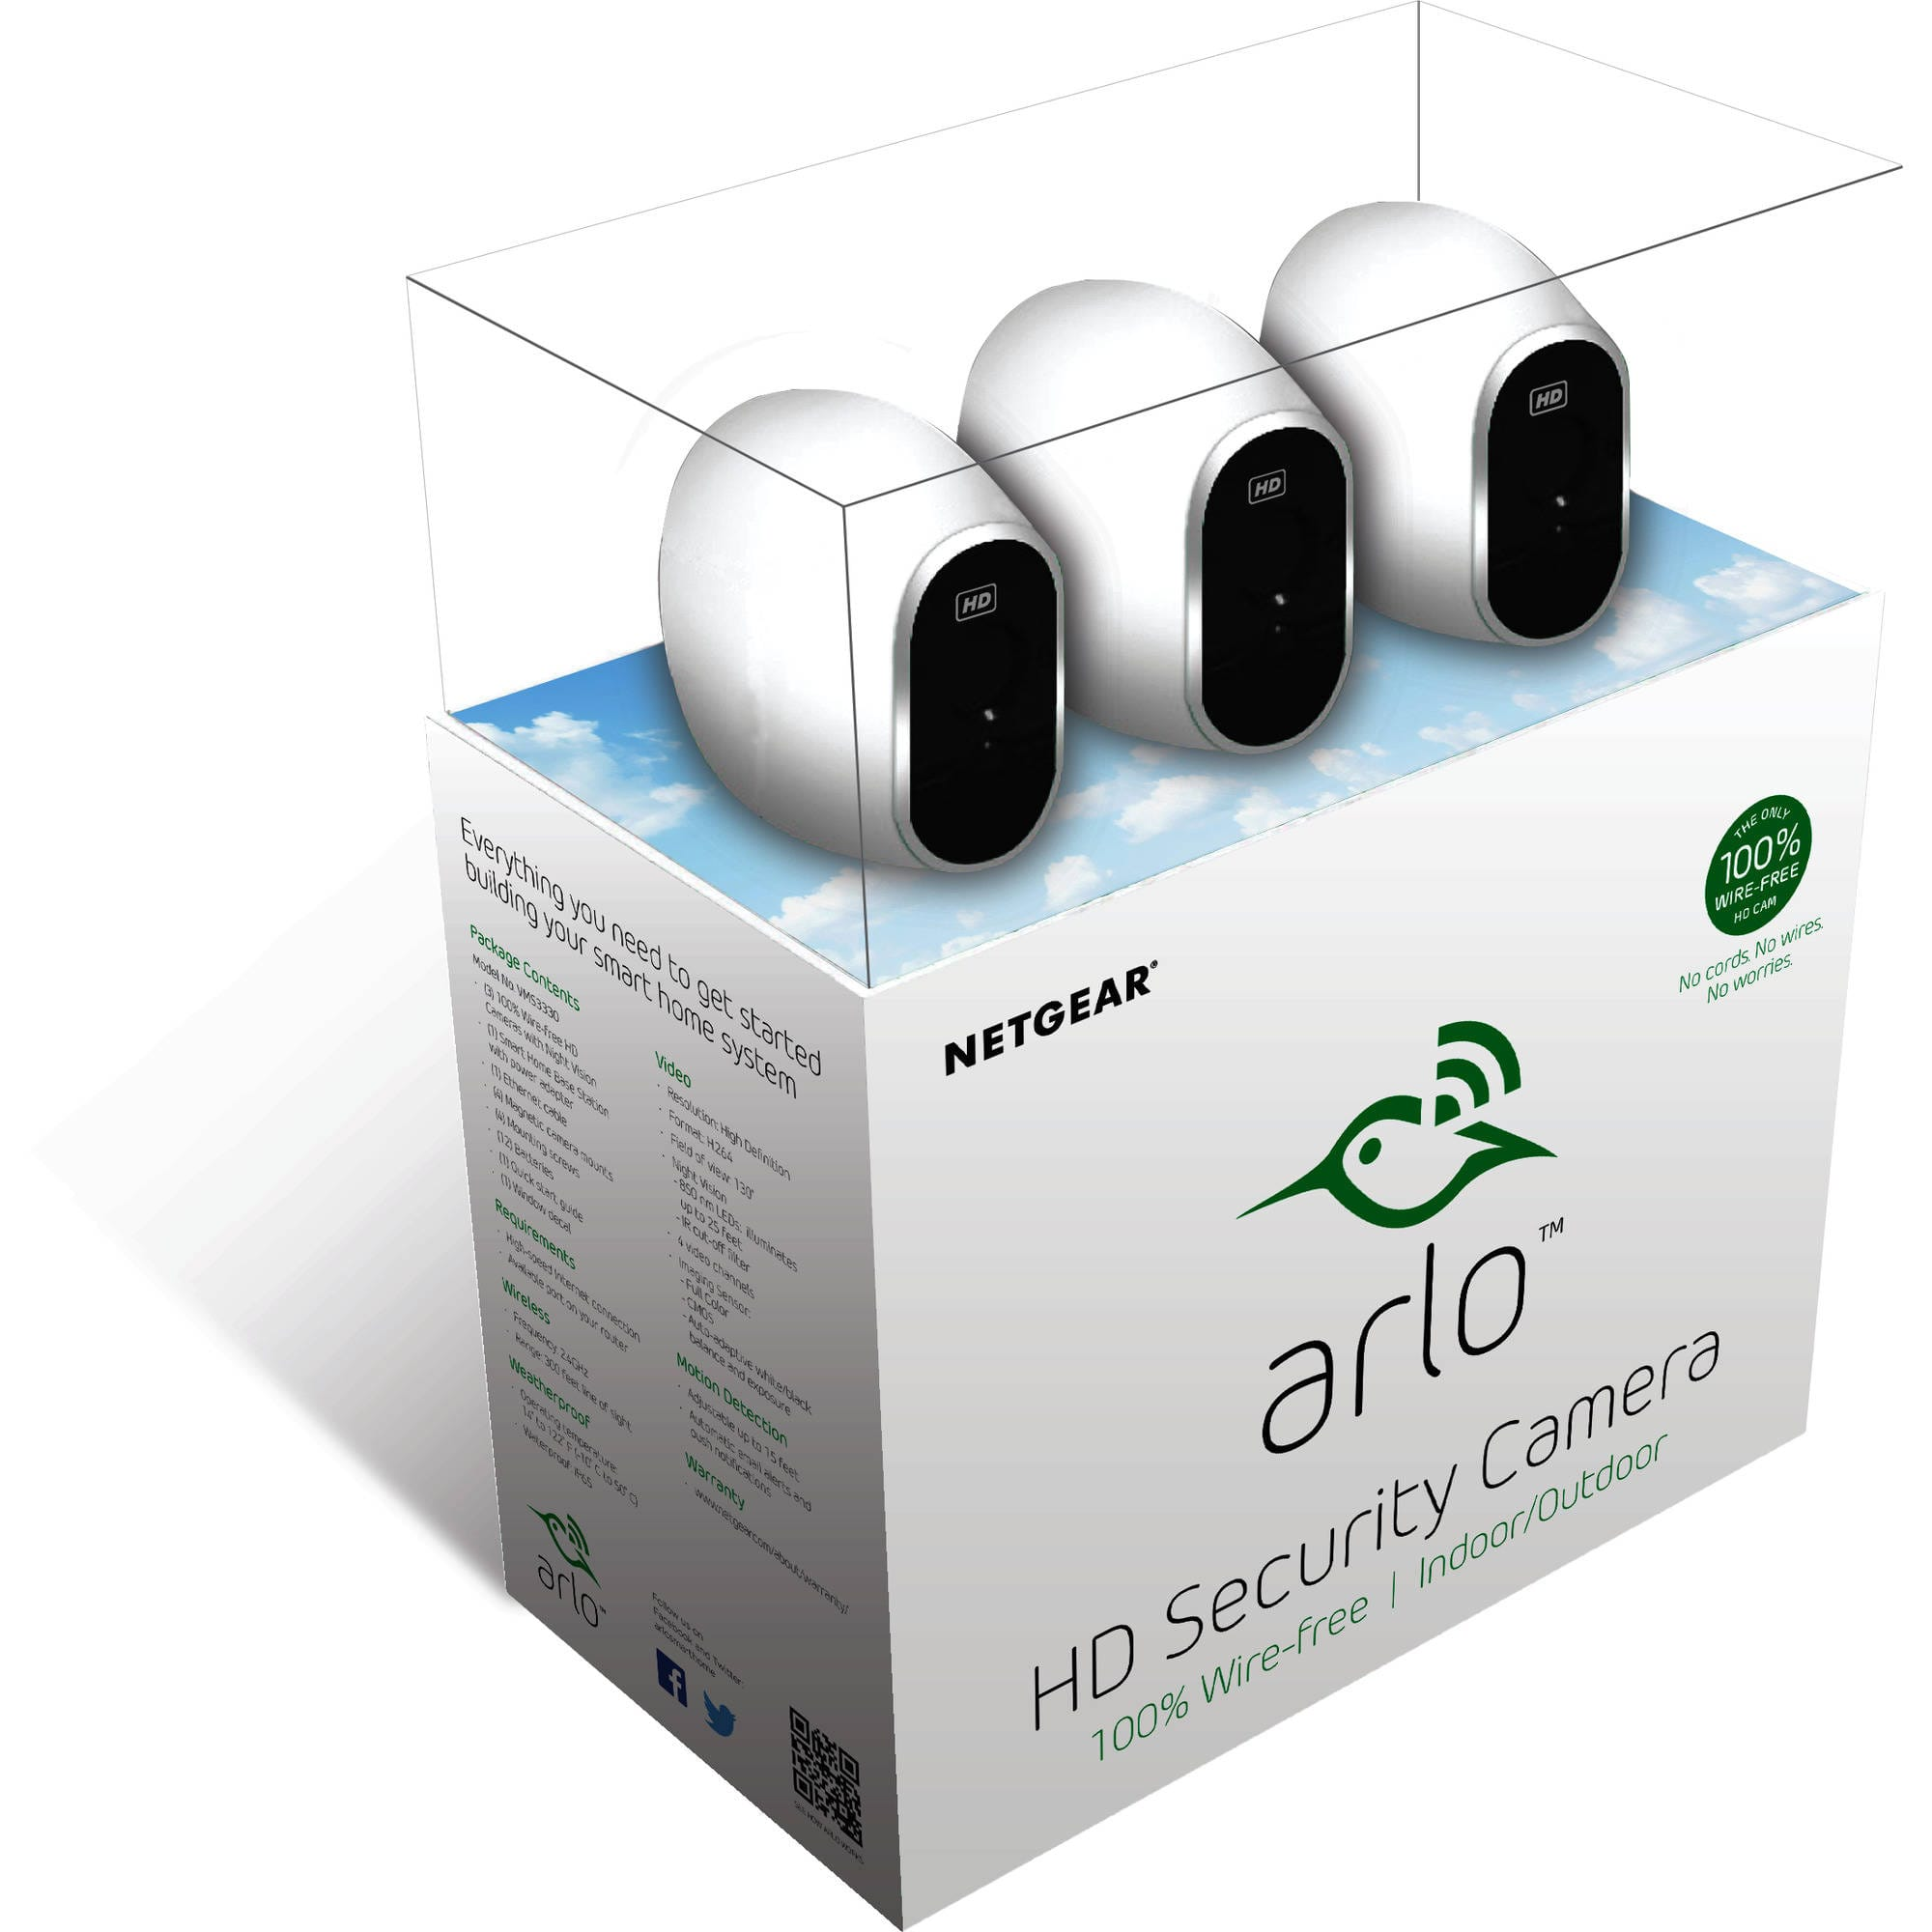 Arlo HD Security Camera 3 cams VMS3330 - $199 99 Walmart BM